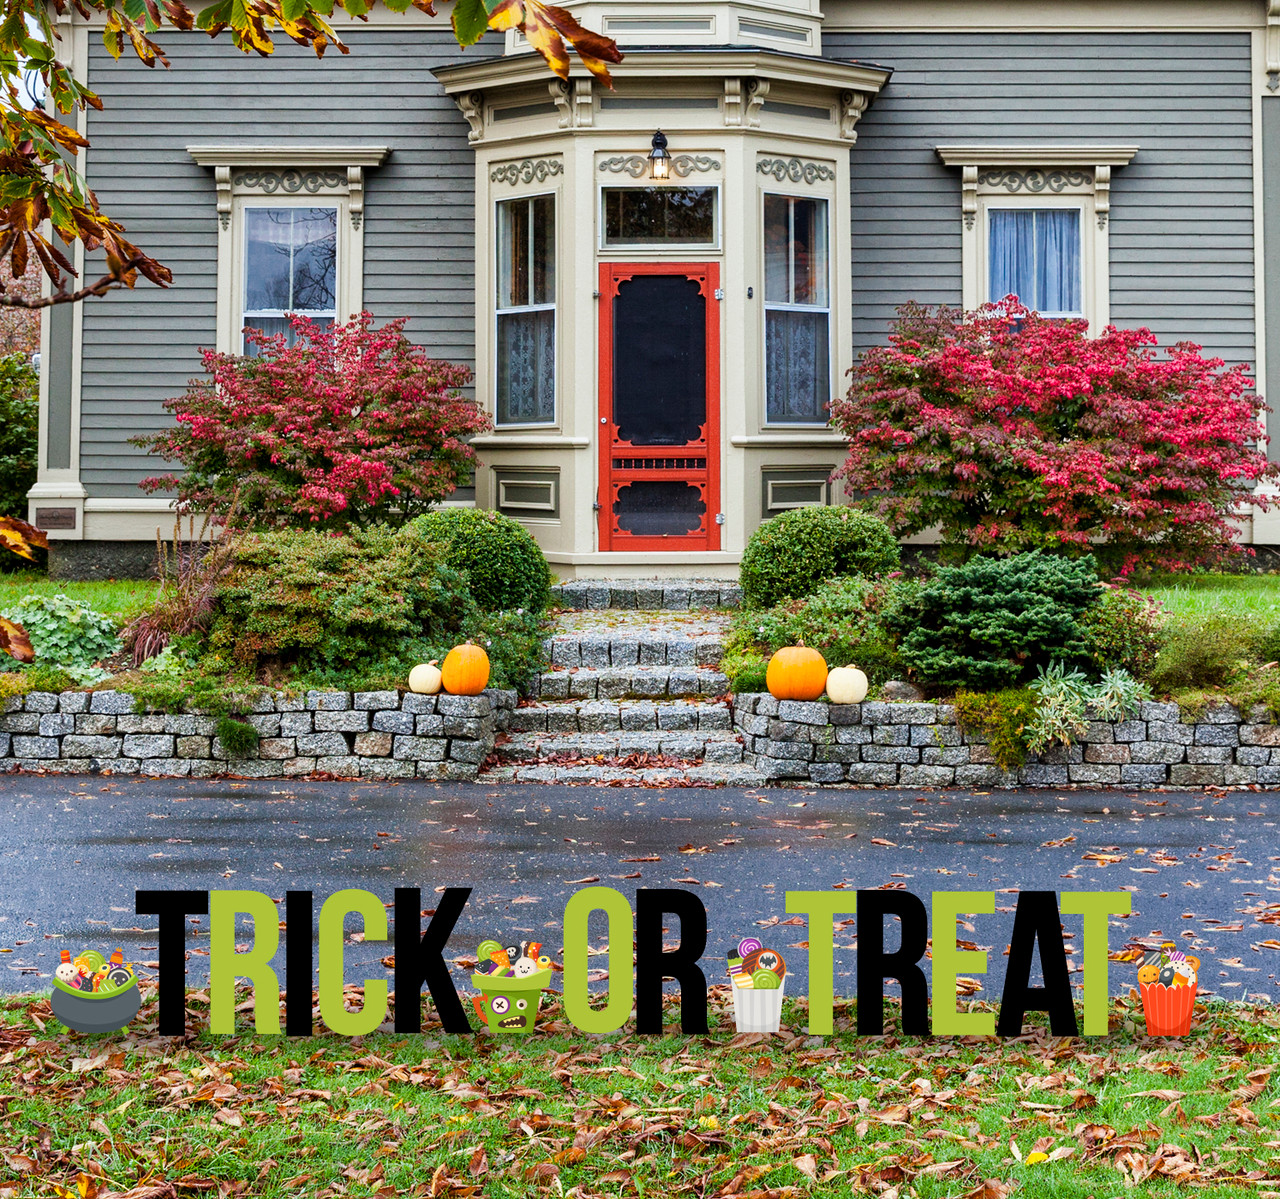 Coroplast outdoor Trick or Treat Yard Letters with Candy Buckets.